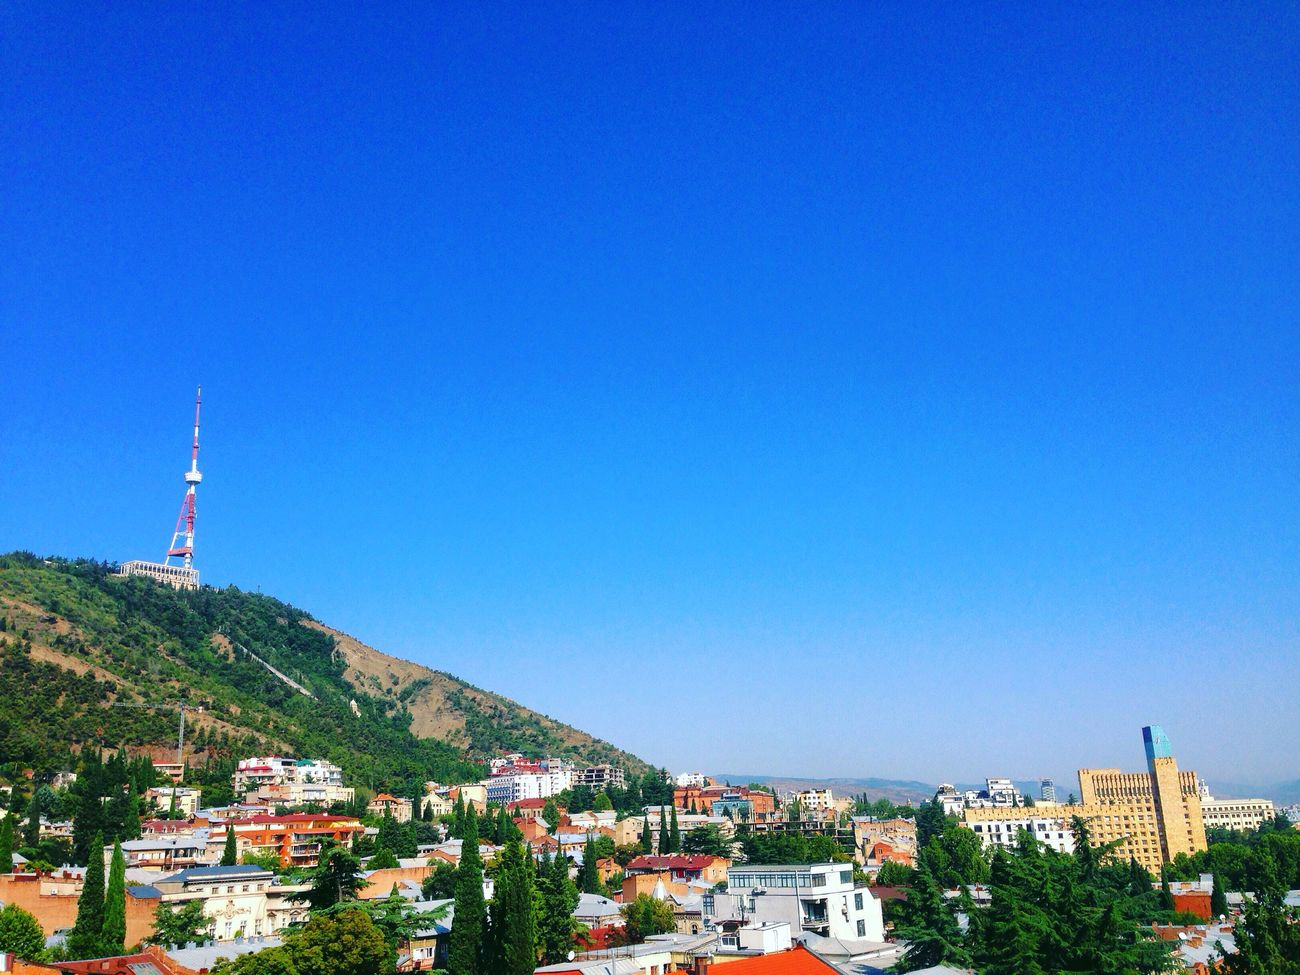 Tbilisi Tbilisi Loves You Georgia Country Town View